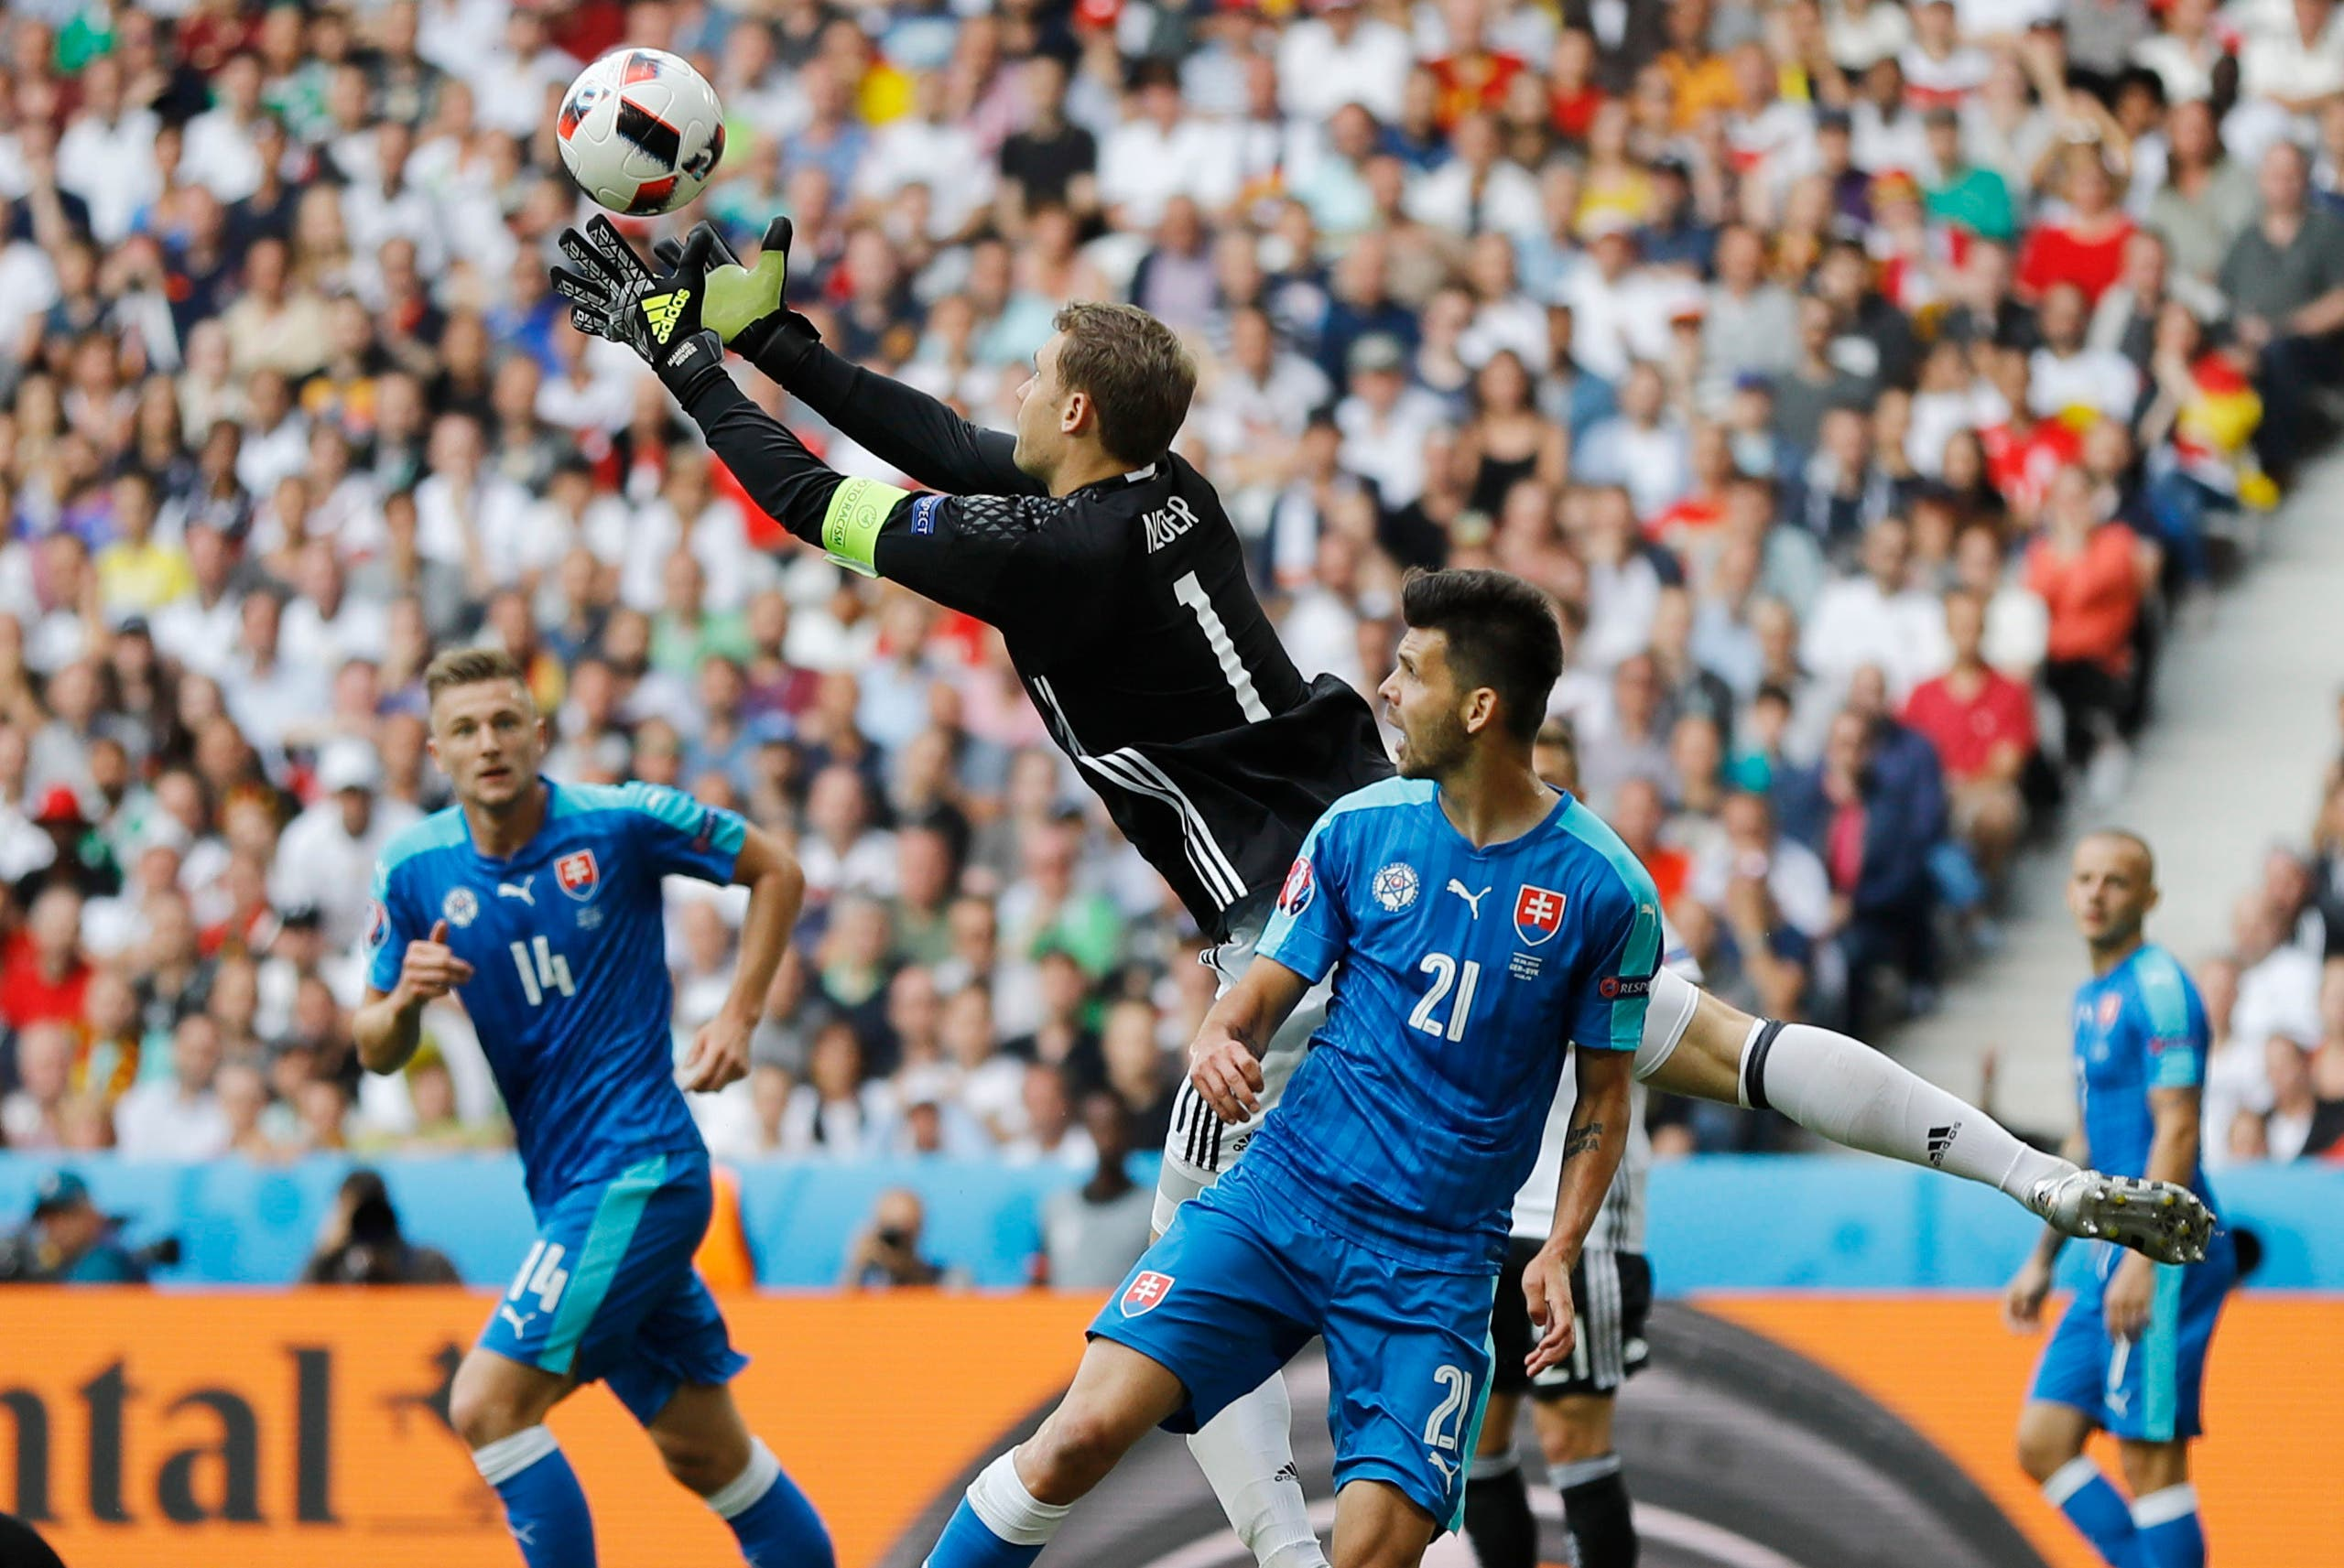 Germany goalkeeper Manuel Neuer reaches for the ball ahead of Slovakia's Michal Duris during the Euro 2016 round of 16 soccer match between Germany and Slovakia, at the Pierre Mauroy stadium in Villeneuve d'Ascq, near Lille, France, Sunday, June 26, 2016. (AP)